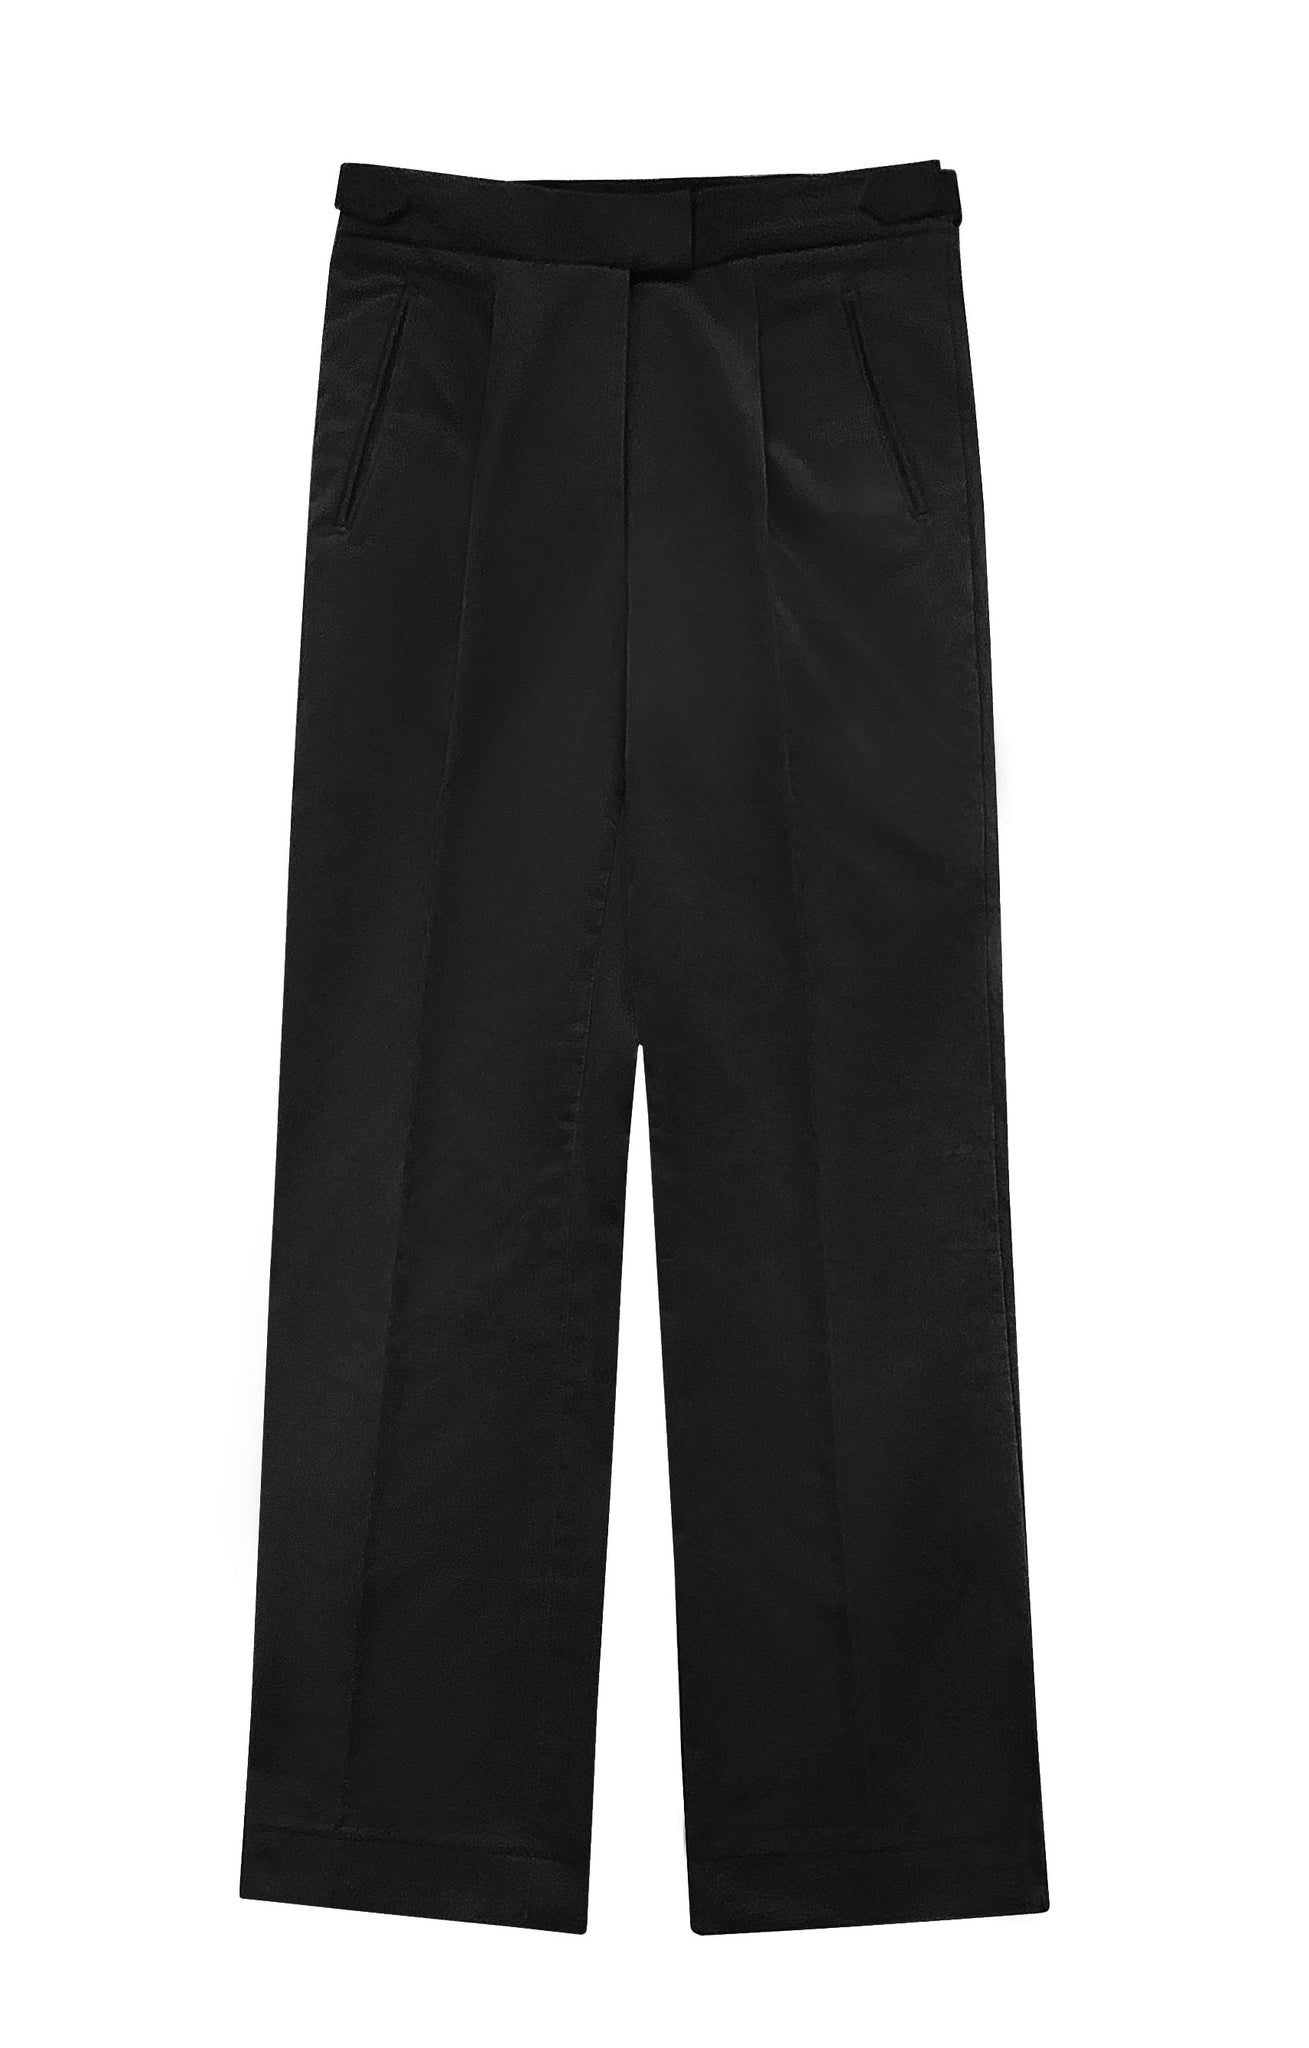 BLACK VELVET PLEATED TROUSERS (PRE-ORDER)